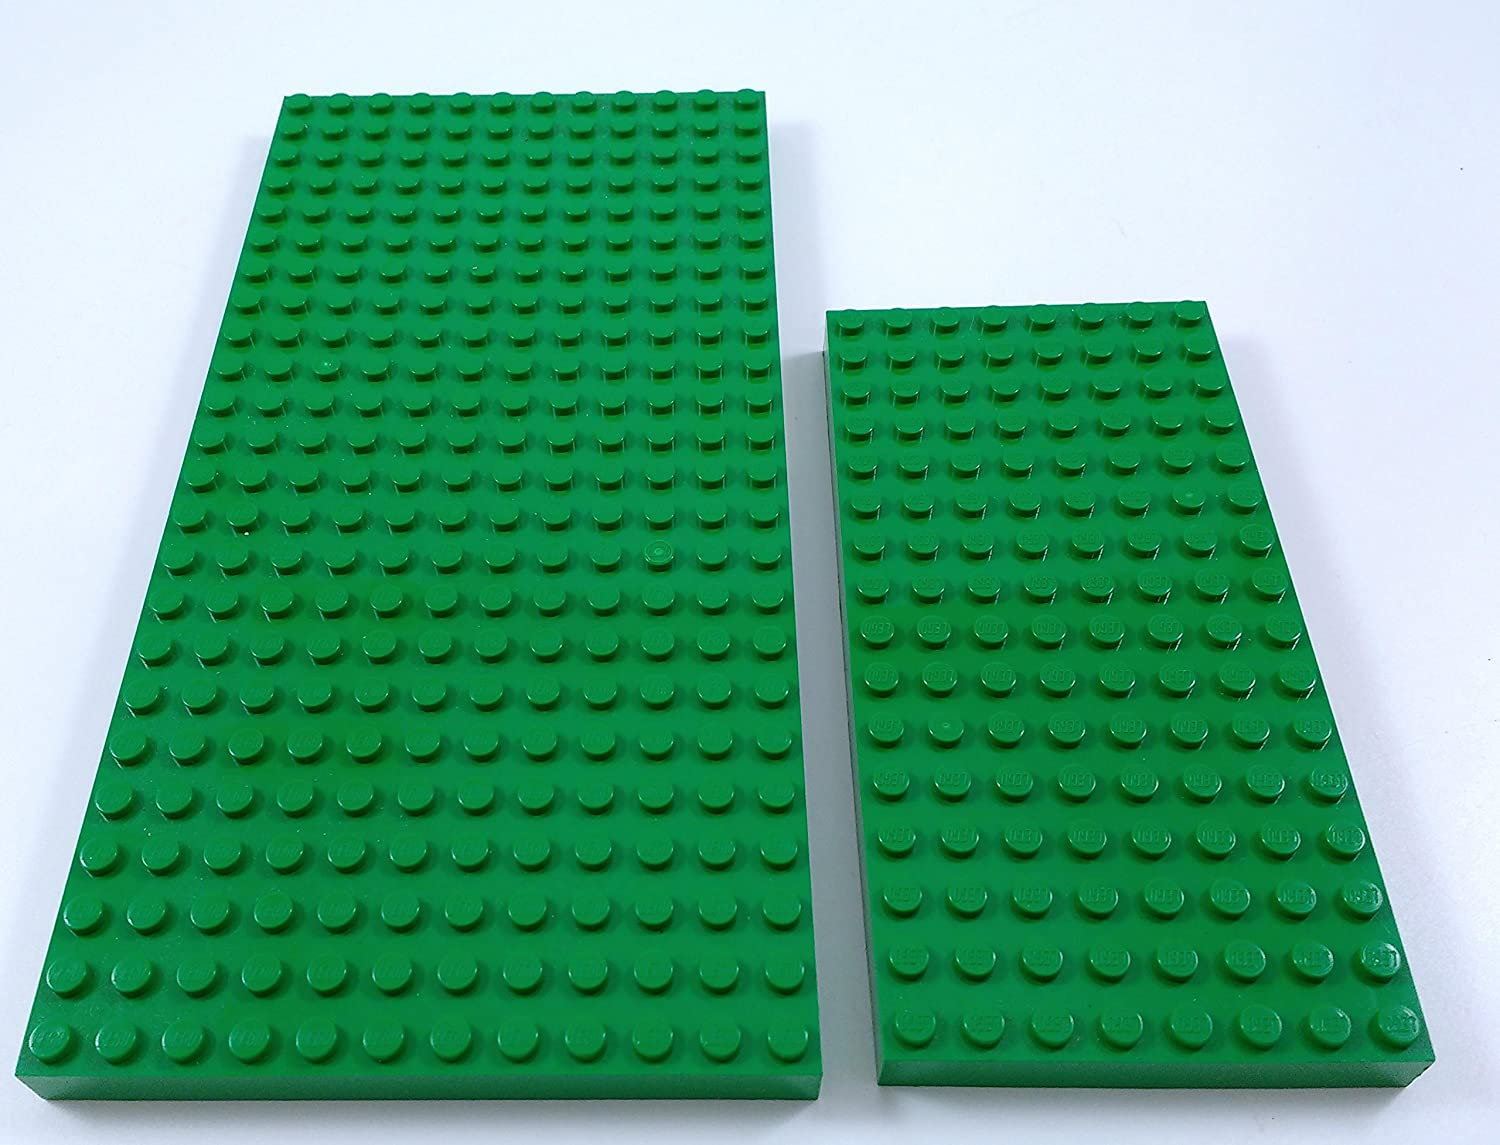 New LEGO Lot of 8 Green 2x3 Basic Building Brick Pieces